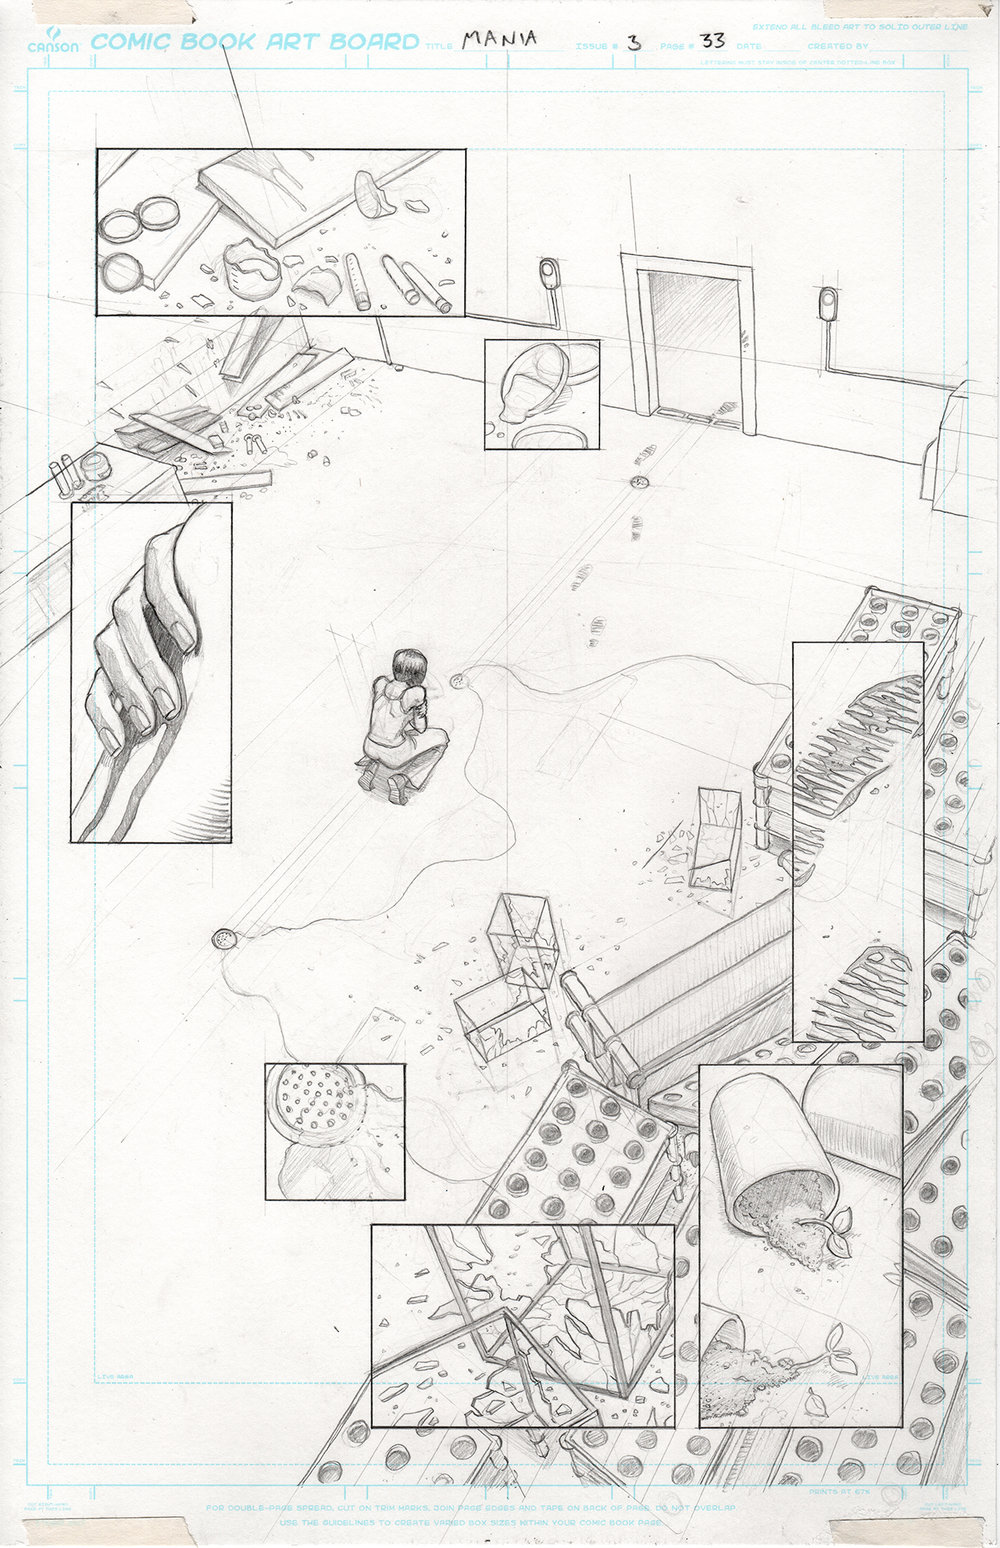 MANIA Issue 3, Page 33